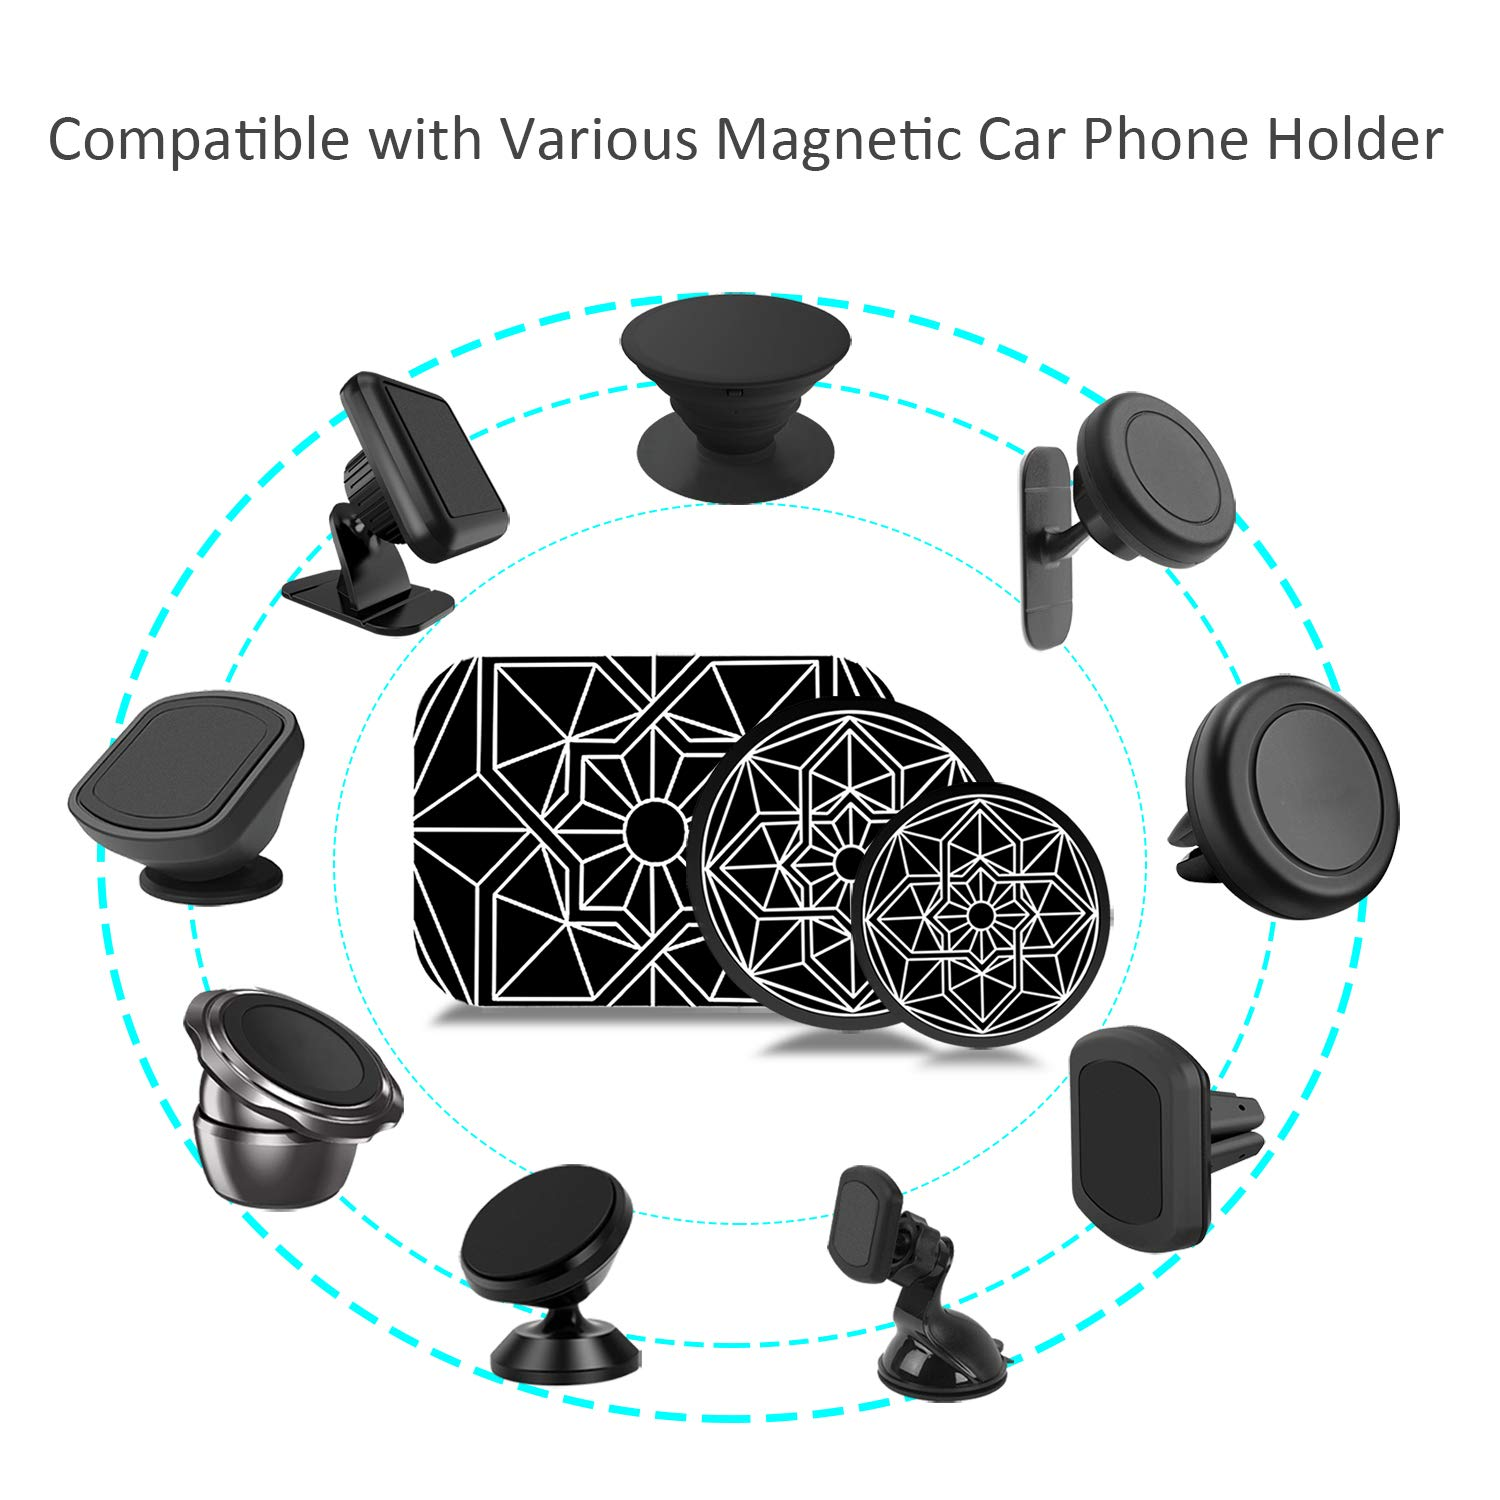 Mount Metal Plate 10 Pack for Magnetic Cell Phone Car Cradle-Less Mounts with 3M Adhesive,Stylish Universal Disc Replacement Sticker for Magnet iPhone Holder Mini Tablet GPS Stand 6 Round 4 Rectangle